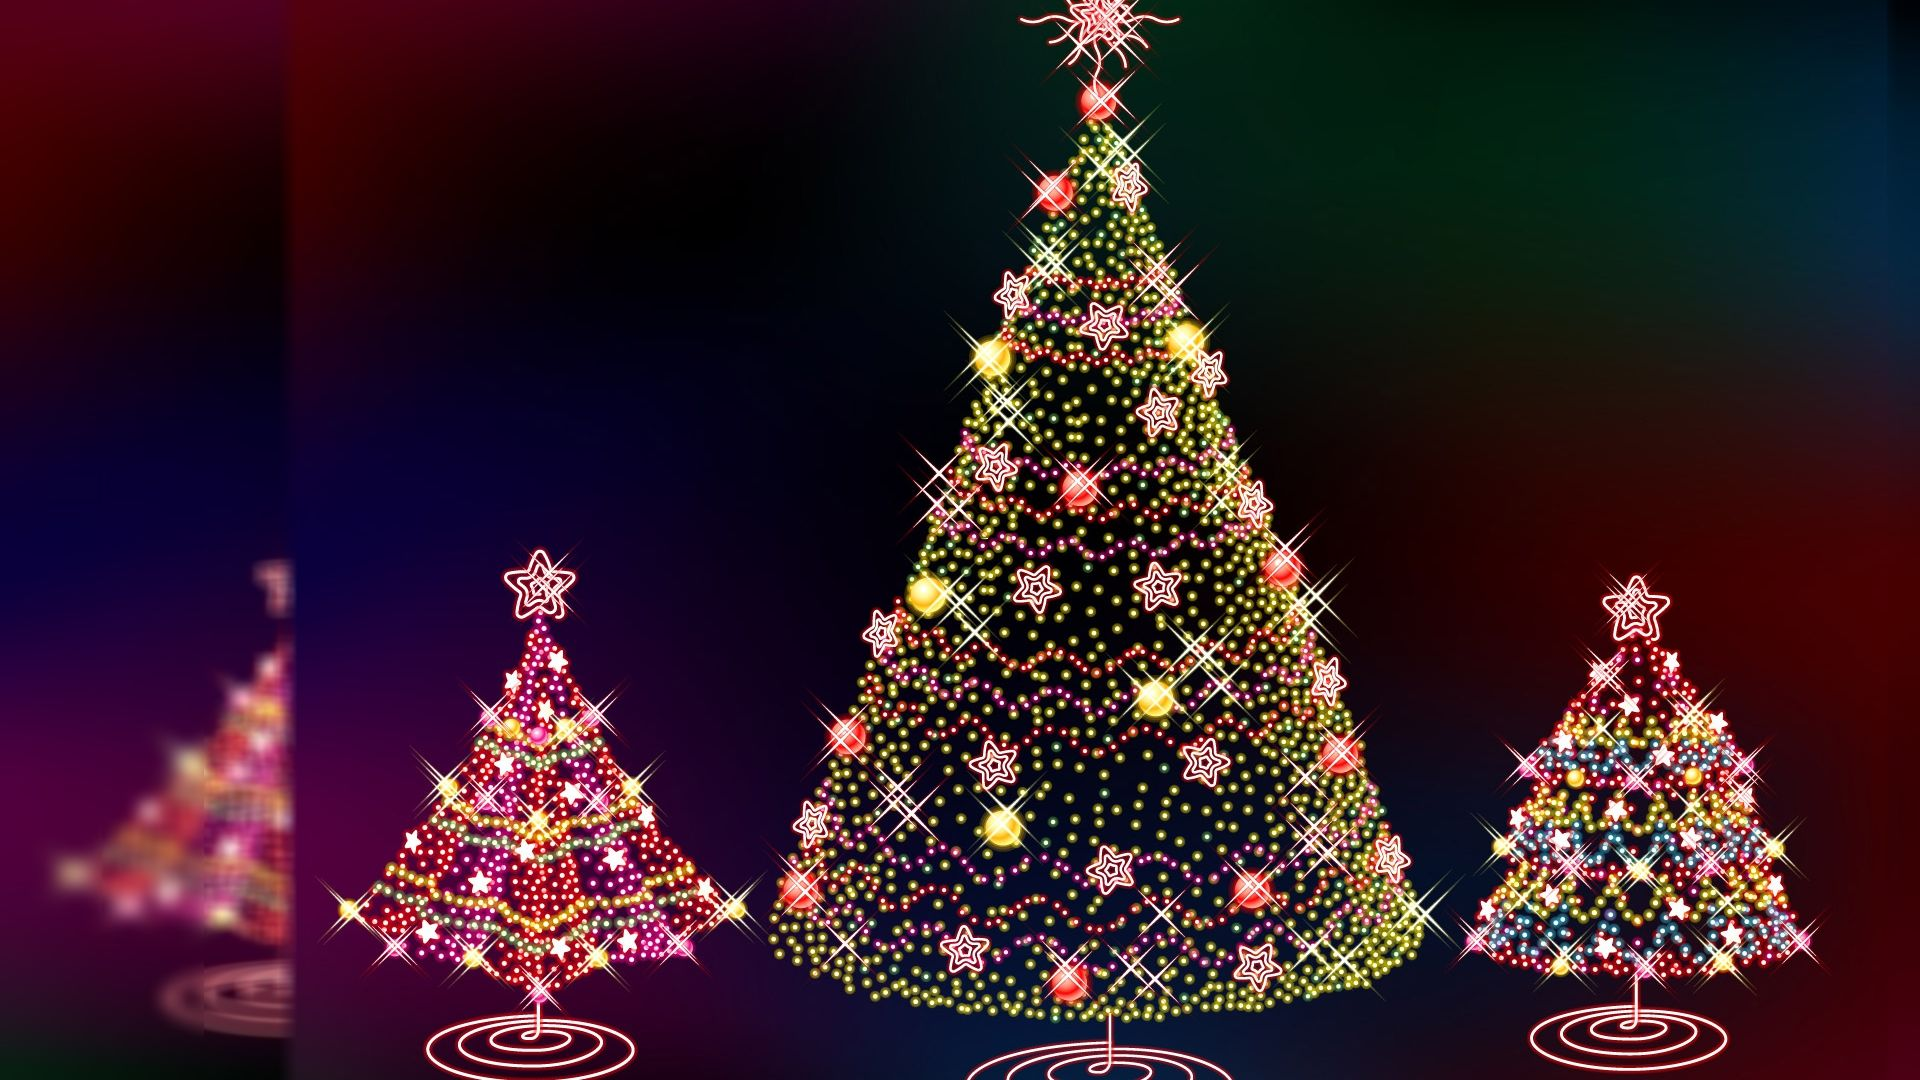 Free Christmas Powerpoint Backgrounds | Wallpapers9 | backgrounds ...